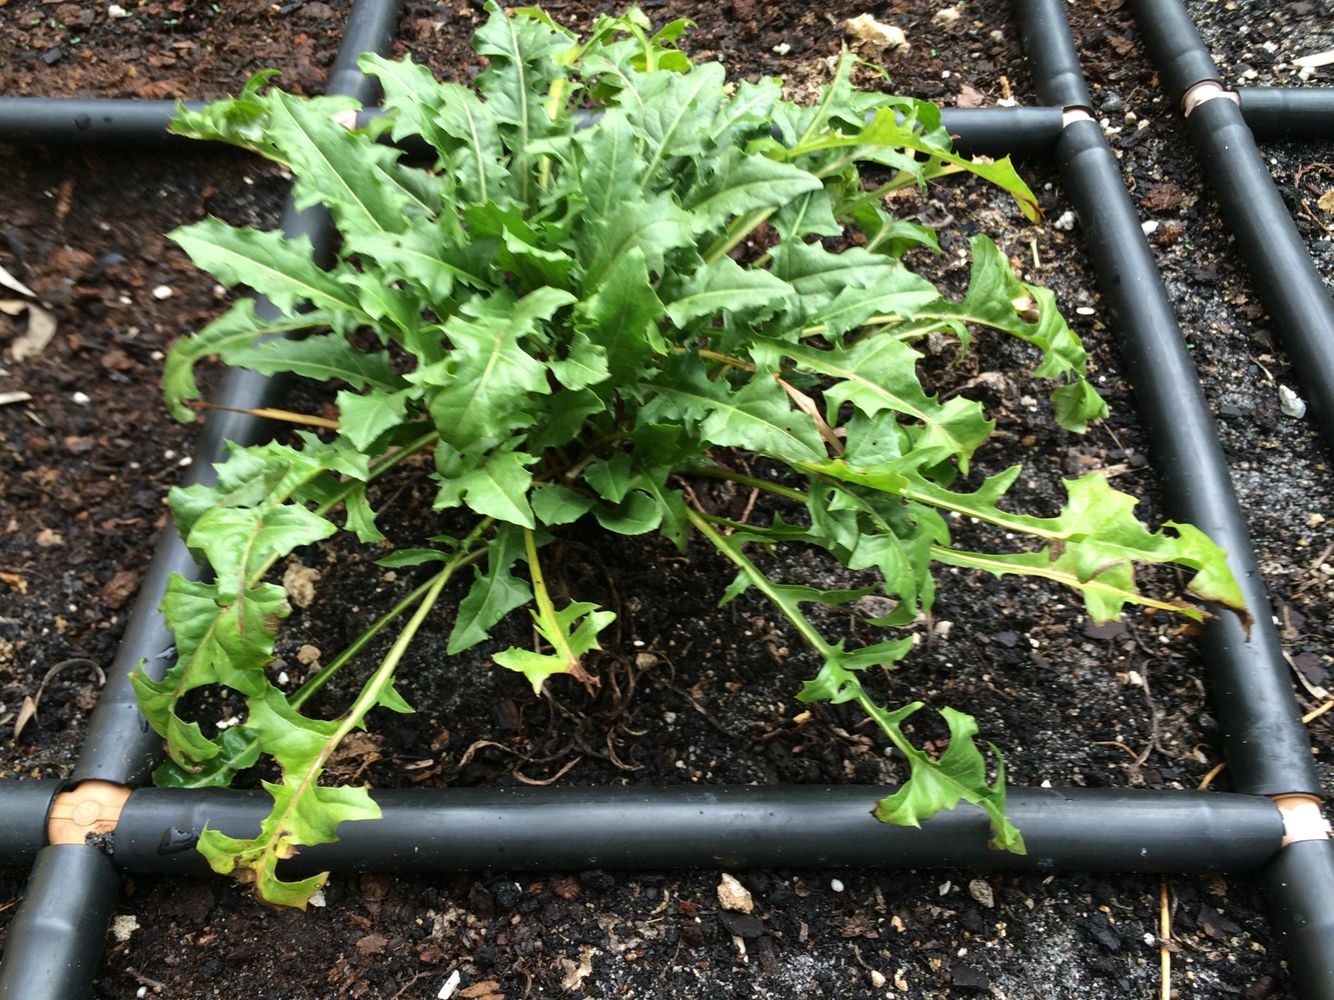 Growing Dandelion Greens In Your Garden Grid Dandelion Greens Are Not Only Edible They Re A Great Substitute For Garden Grid Garden Watering System Watering